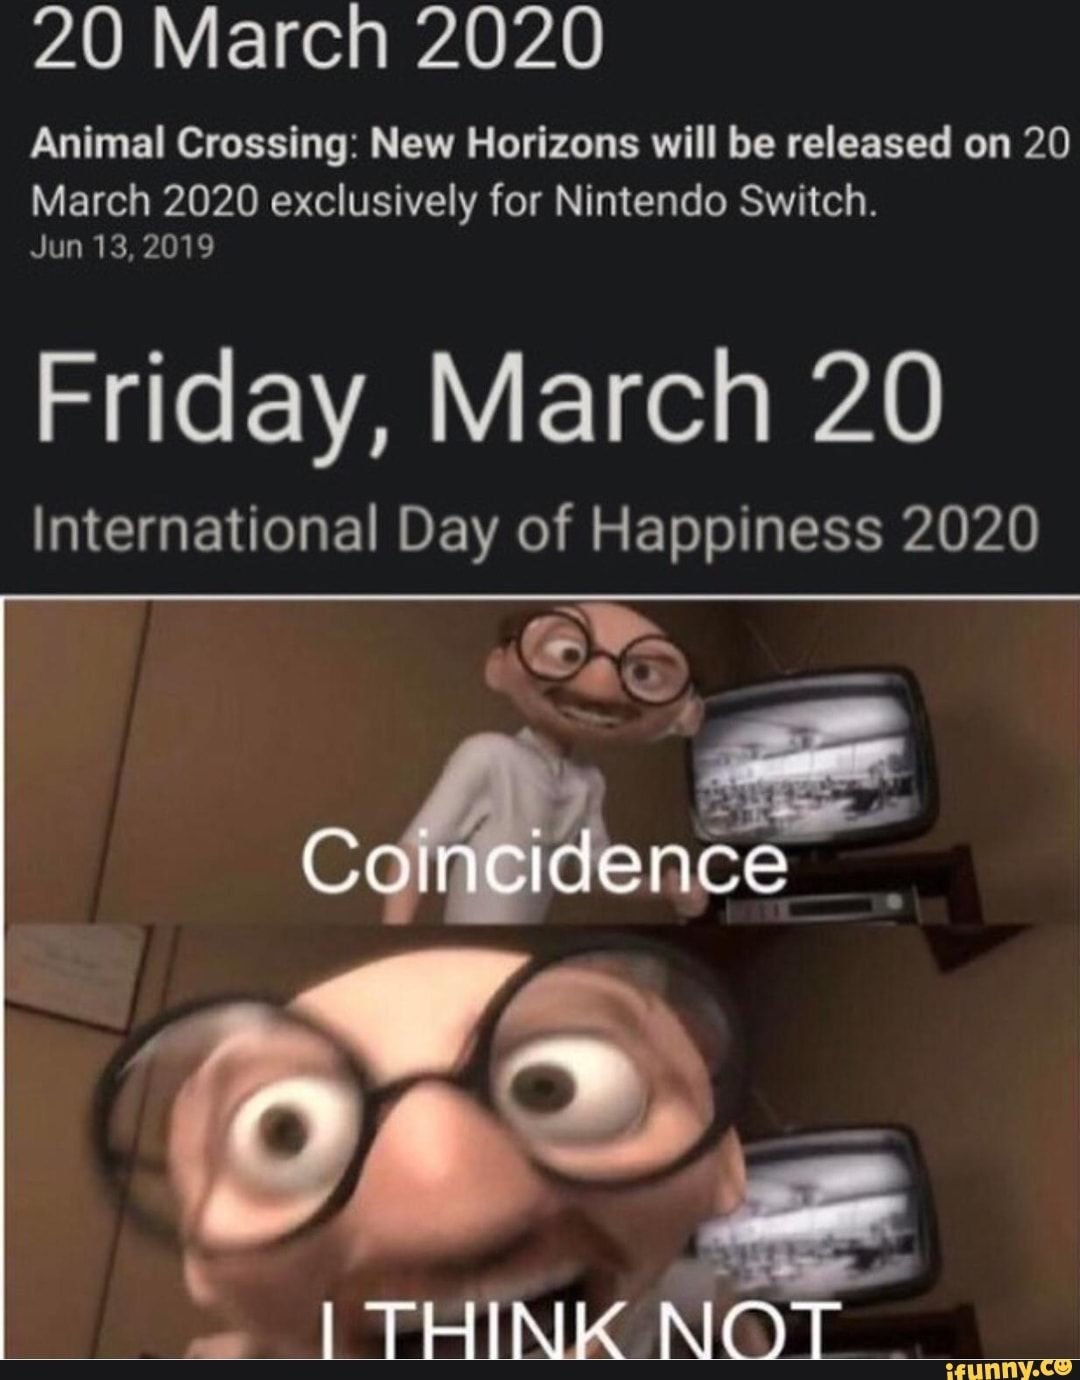 20 March 2020 Animal Crossing New Horizons Will Be Released On 20 March 2020 Exclusively For Nintendo Switch Jun 13 2019 Friday March 20 International Day O Animal Crossing Funny Animal Crossing Memes Animal Crossing